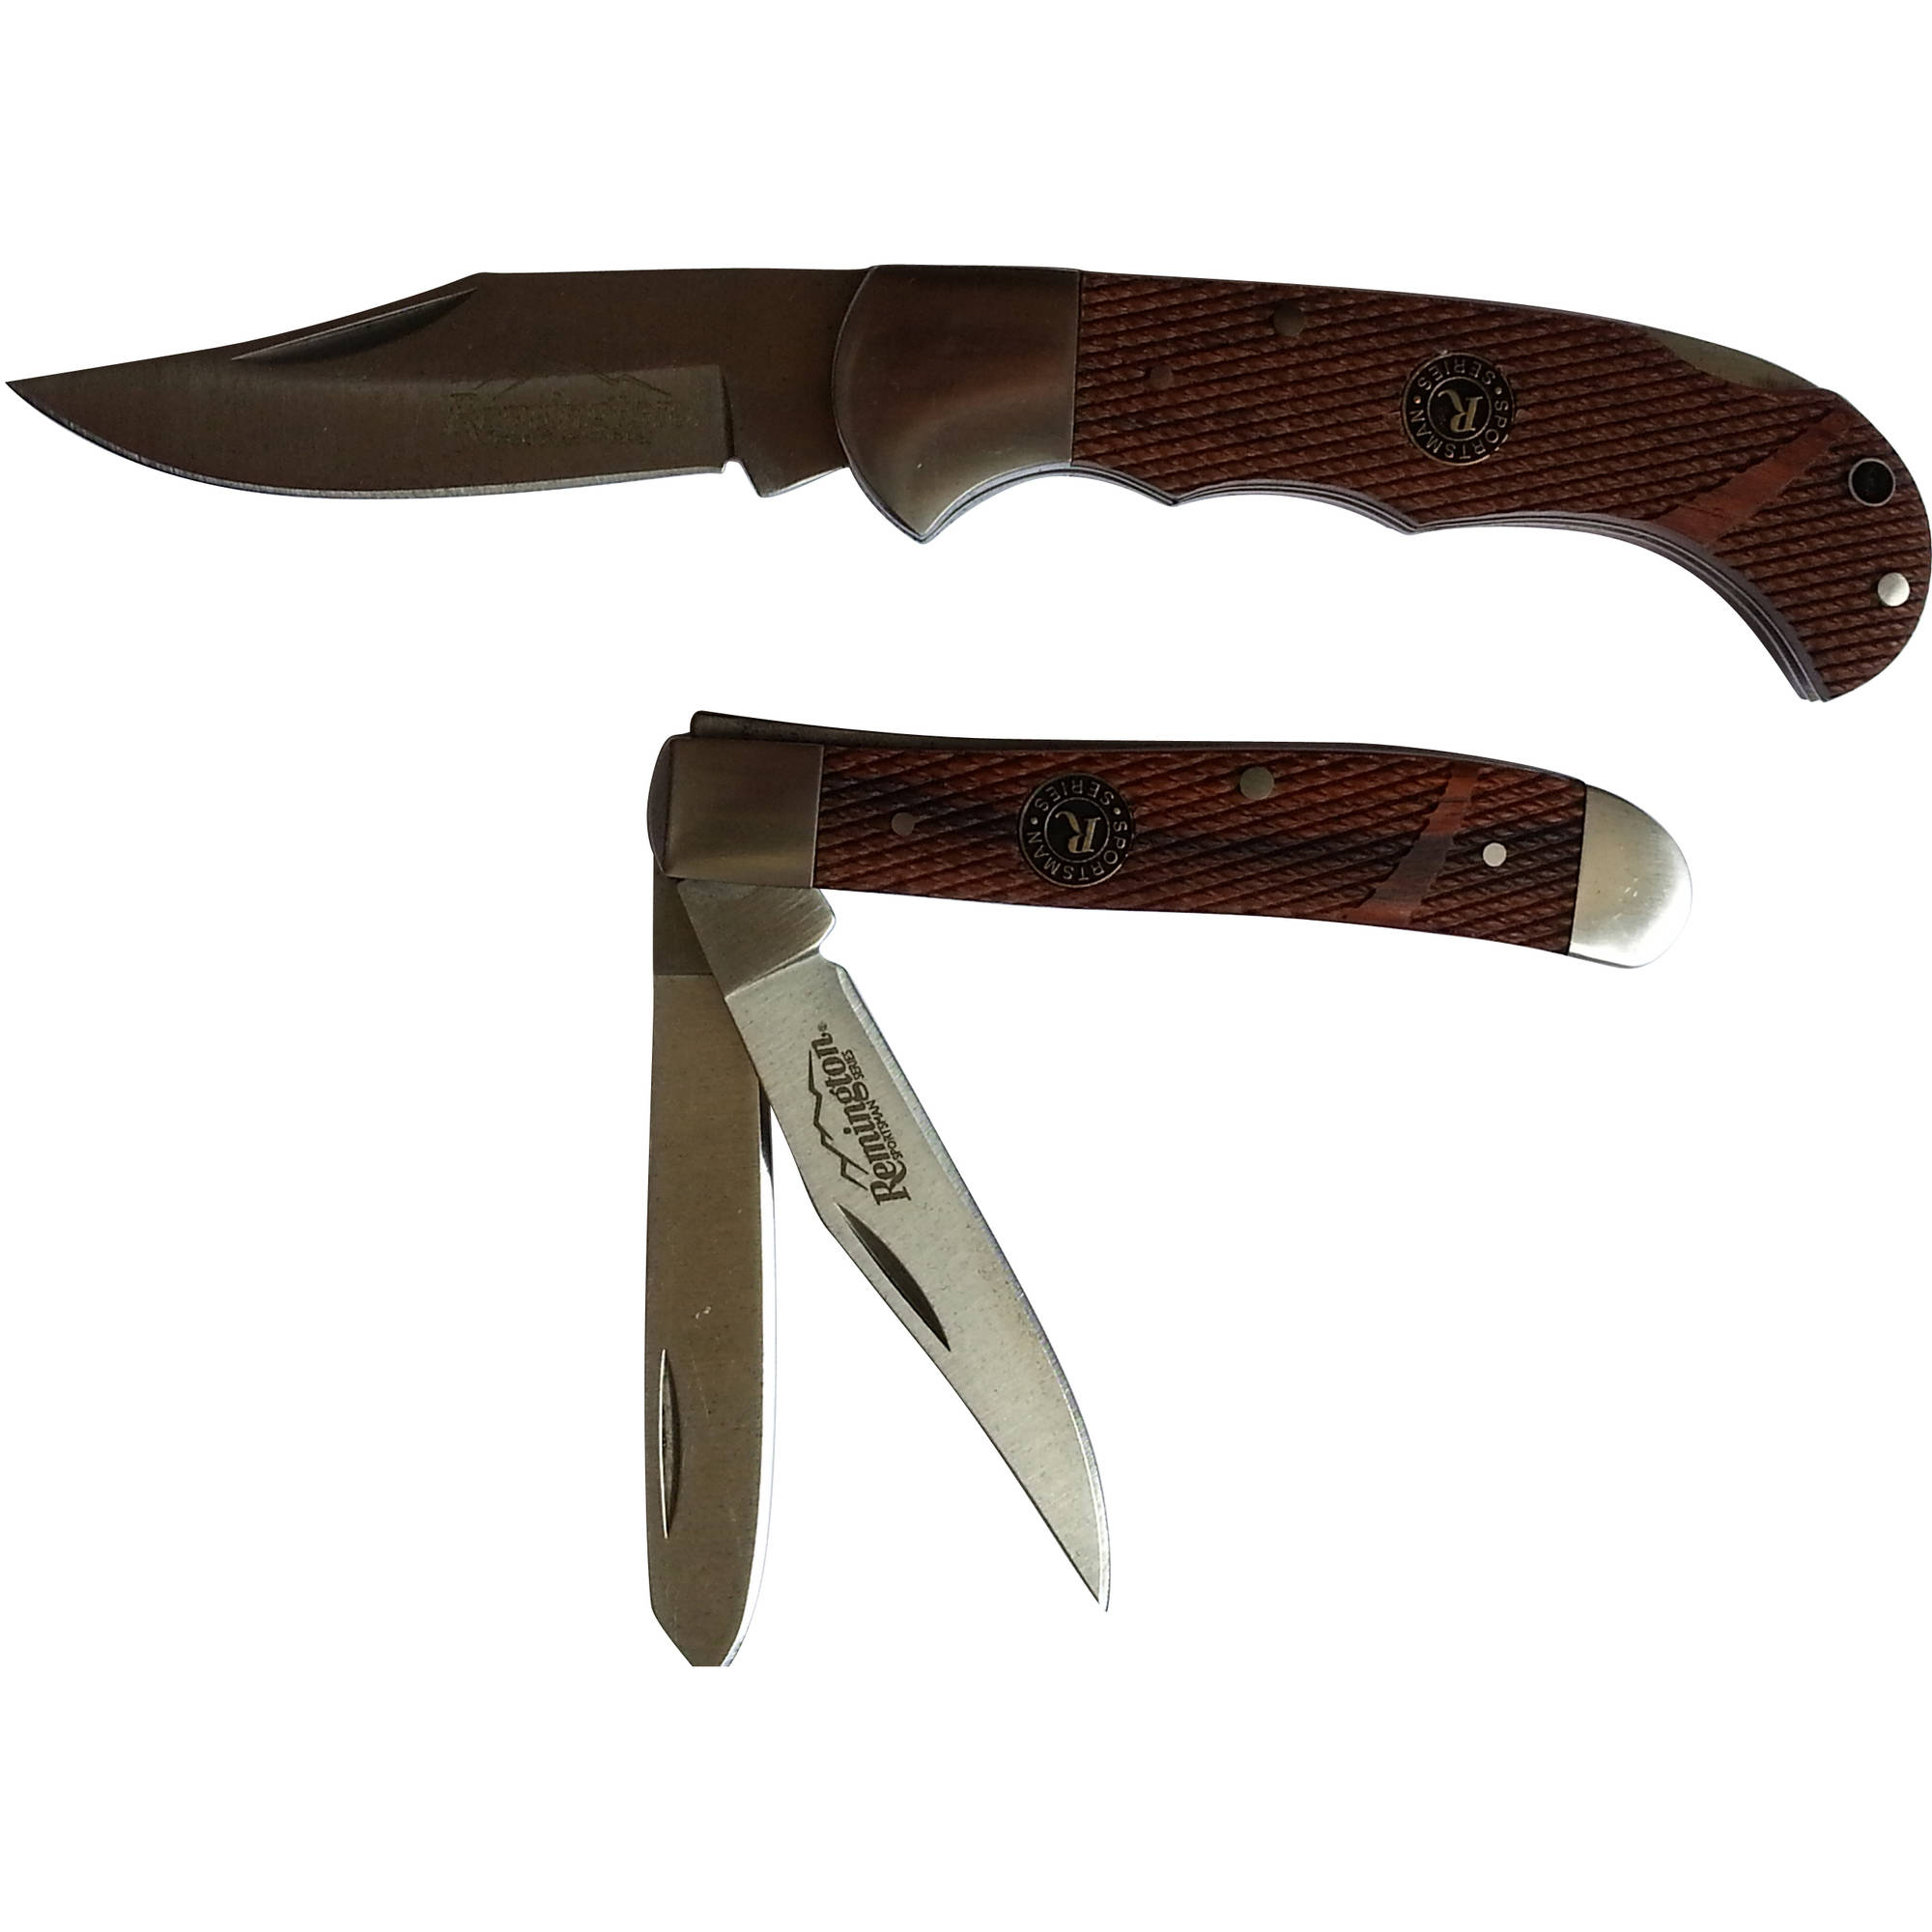 Remington Trapper & Mid Size Folder Twin Knife Combo Pack, Checkered Rosewood Handle with Wild Turkey Collector Tin